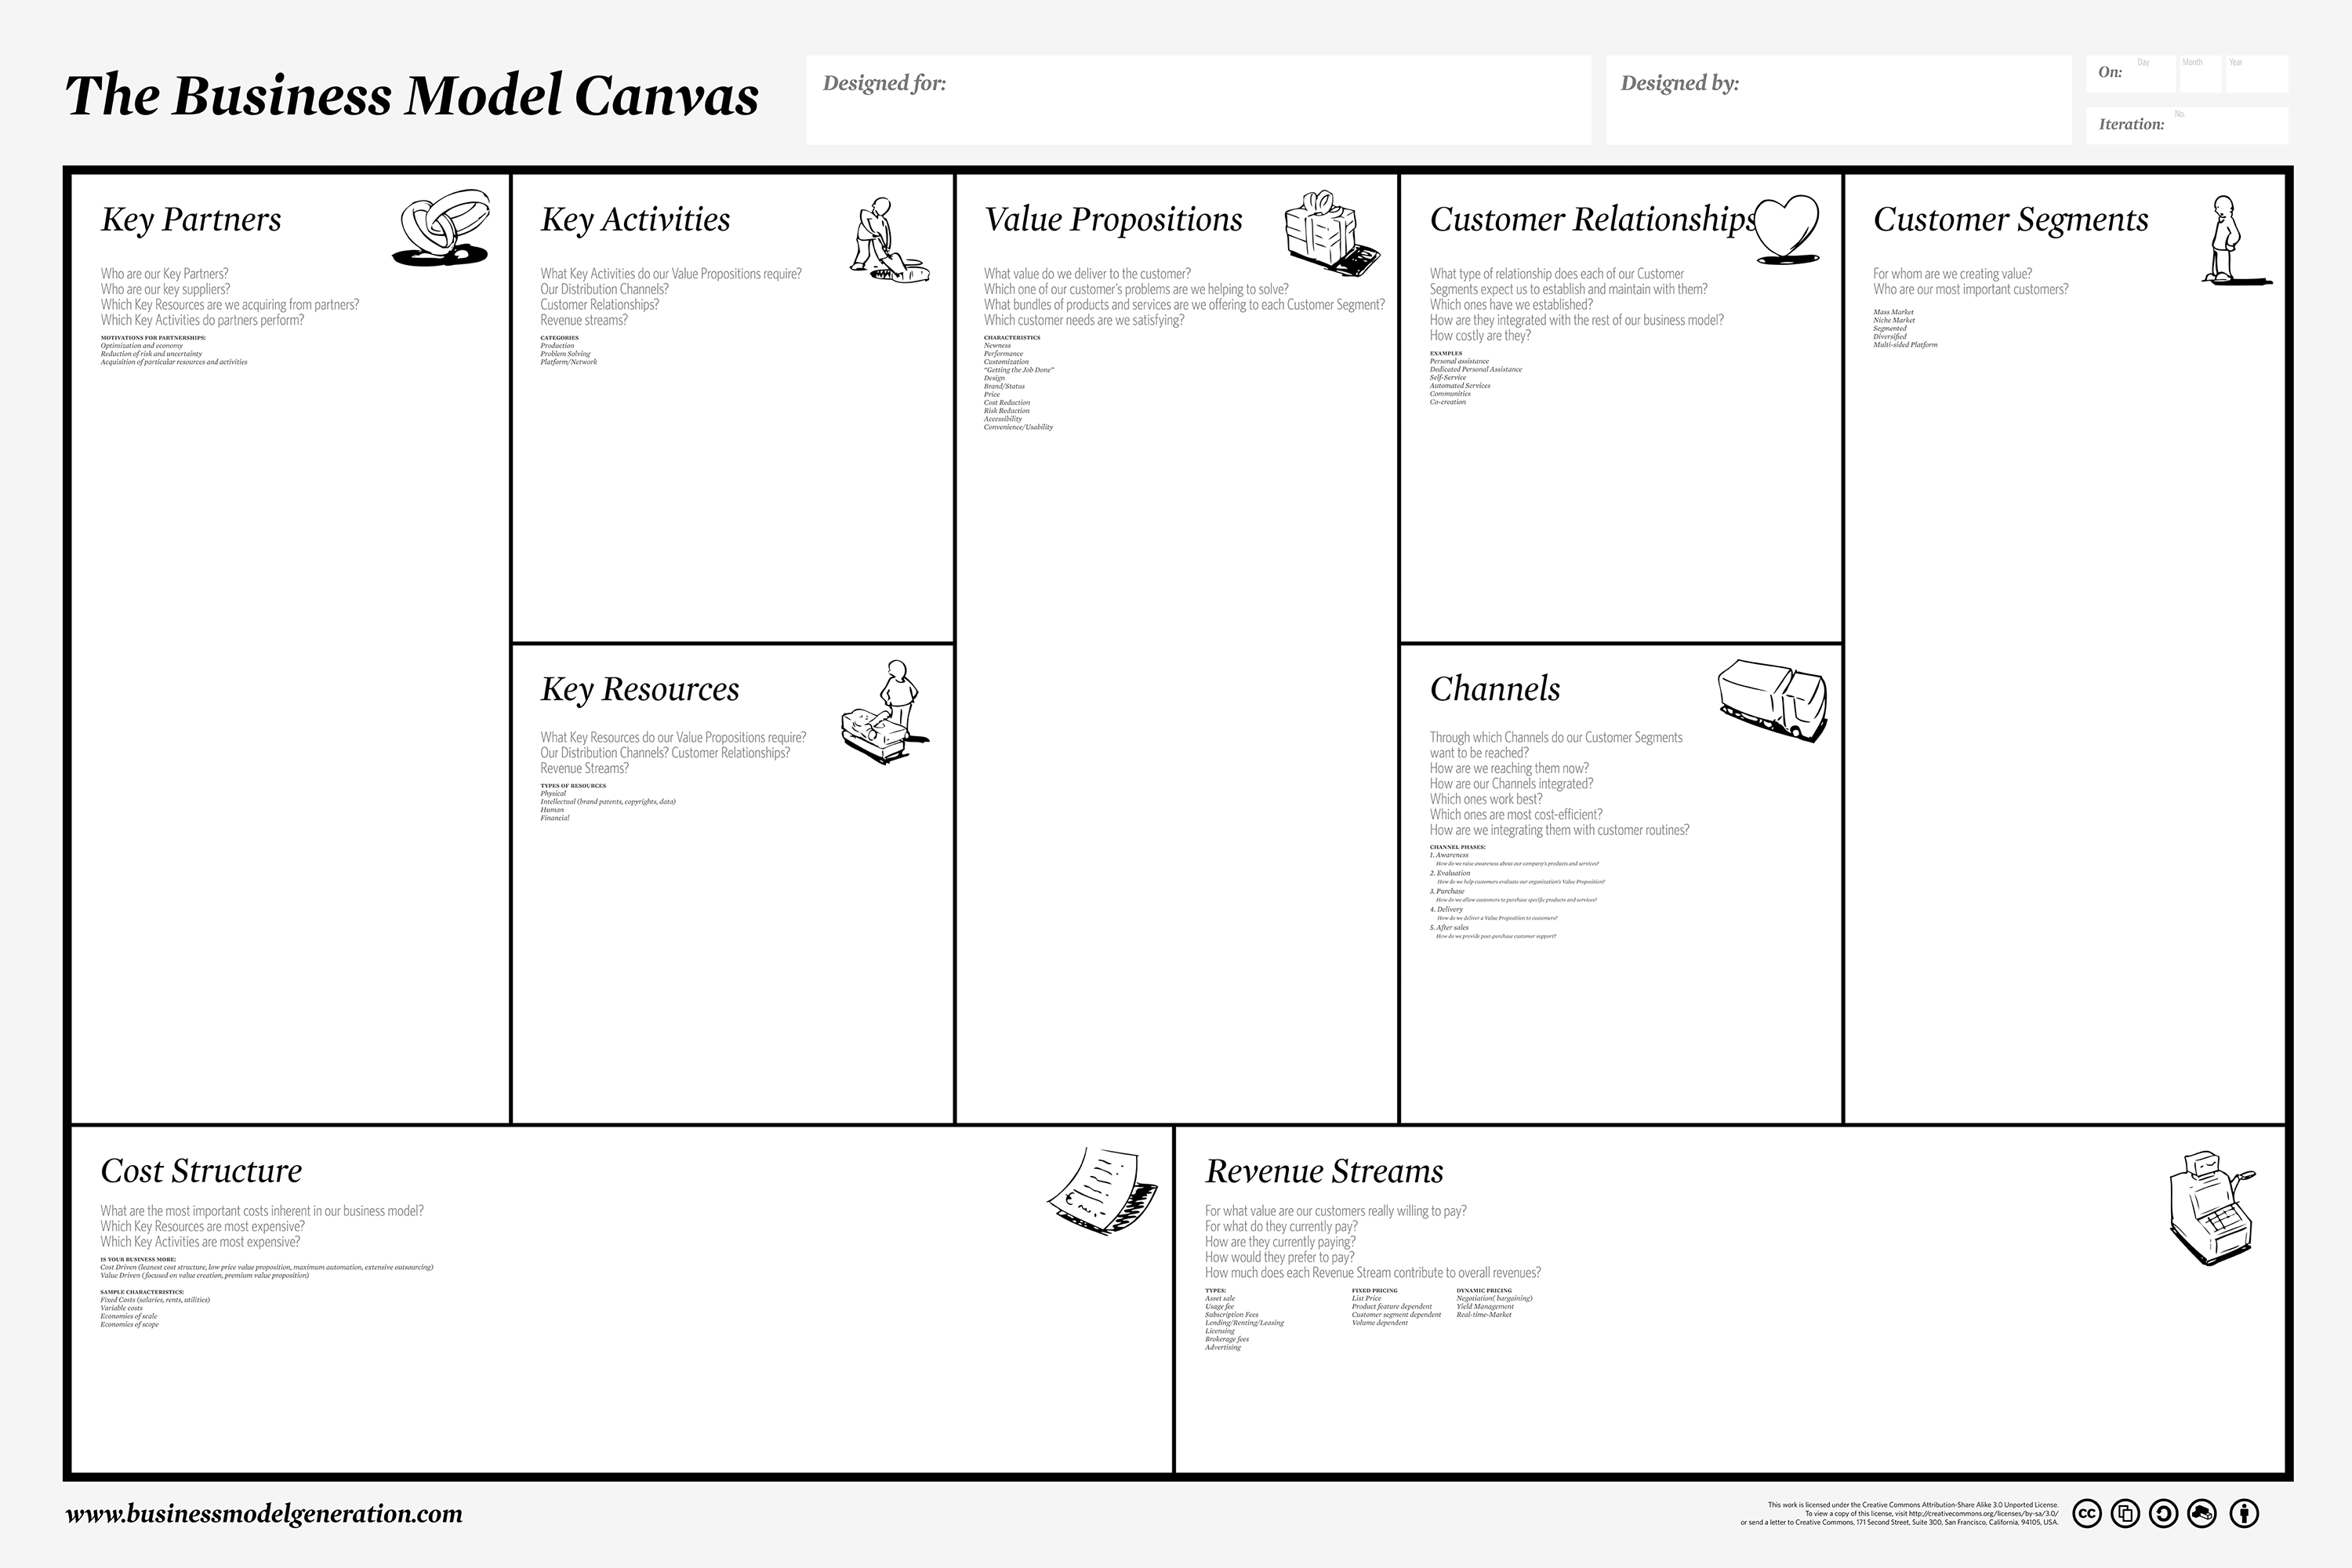 Business models knowledge center business model canvas generic business model template accmission Gallery